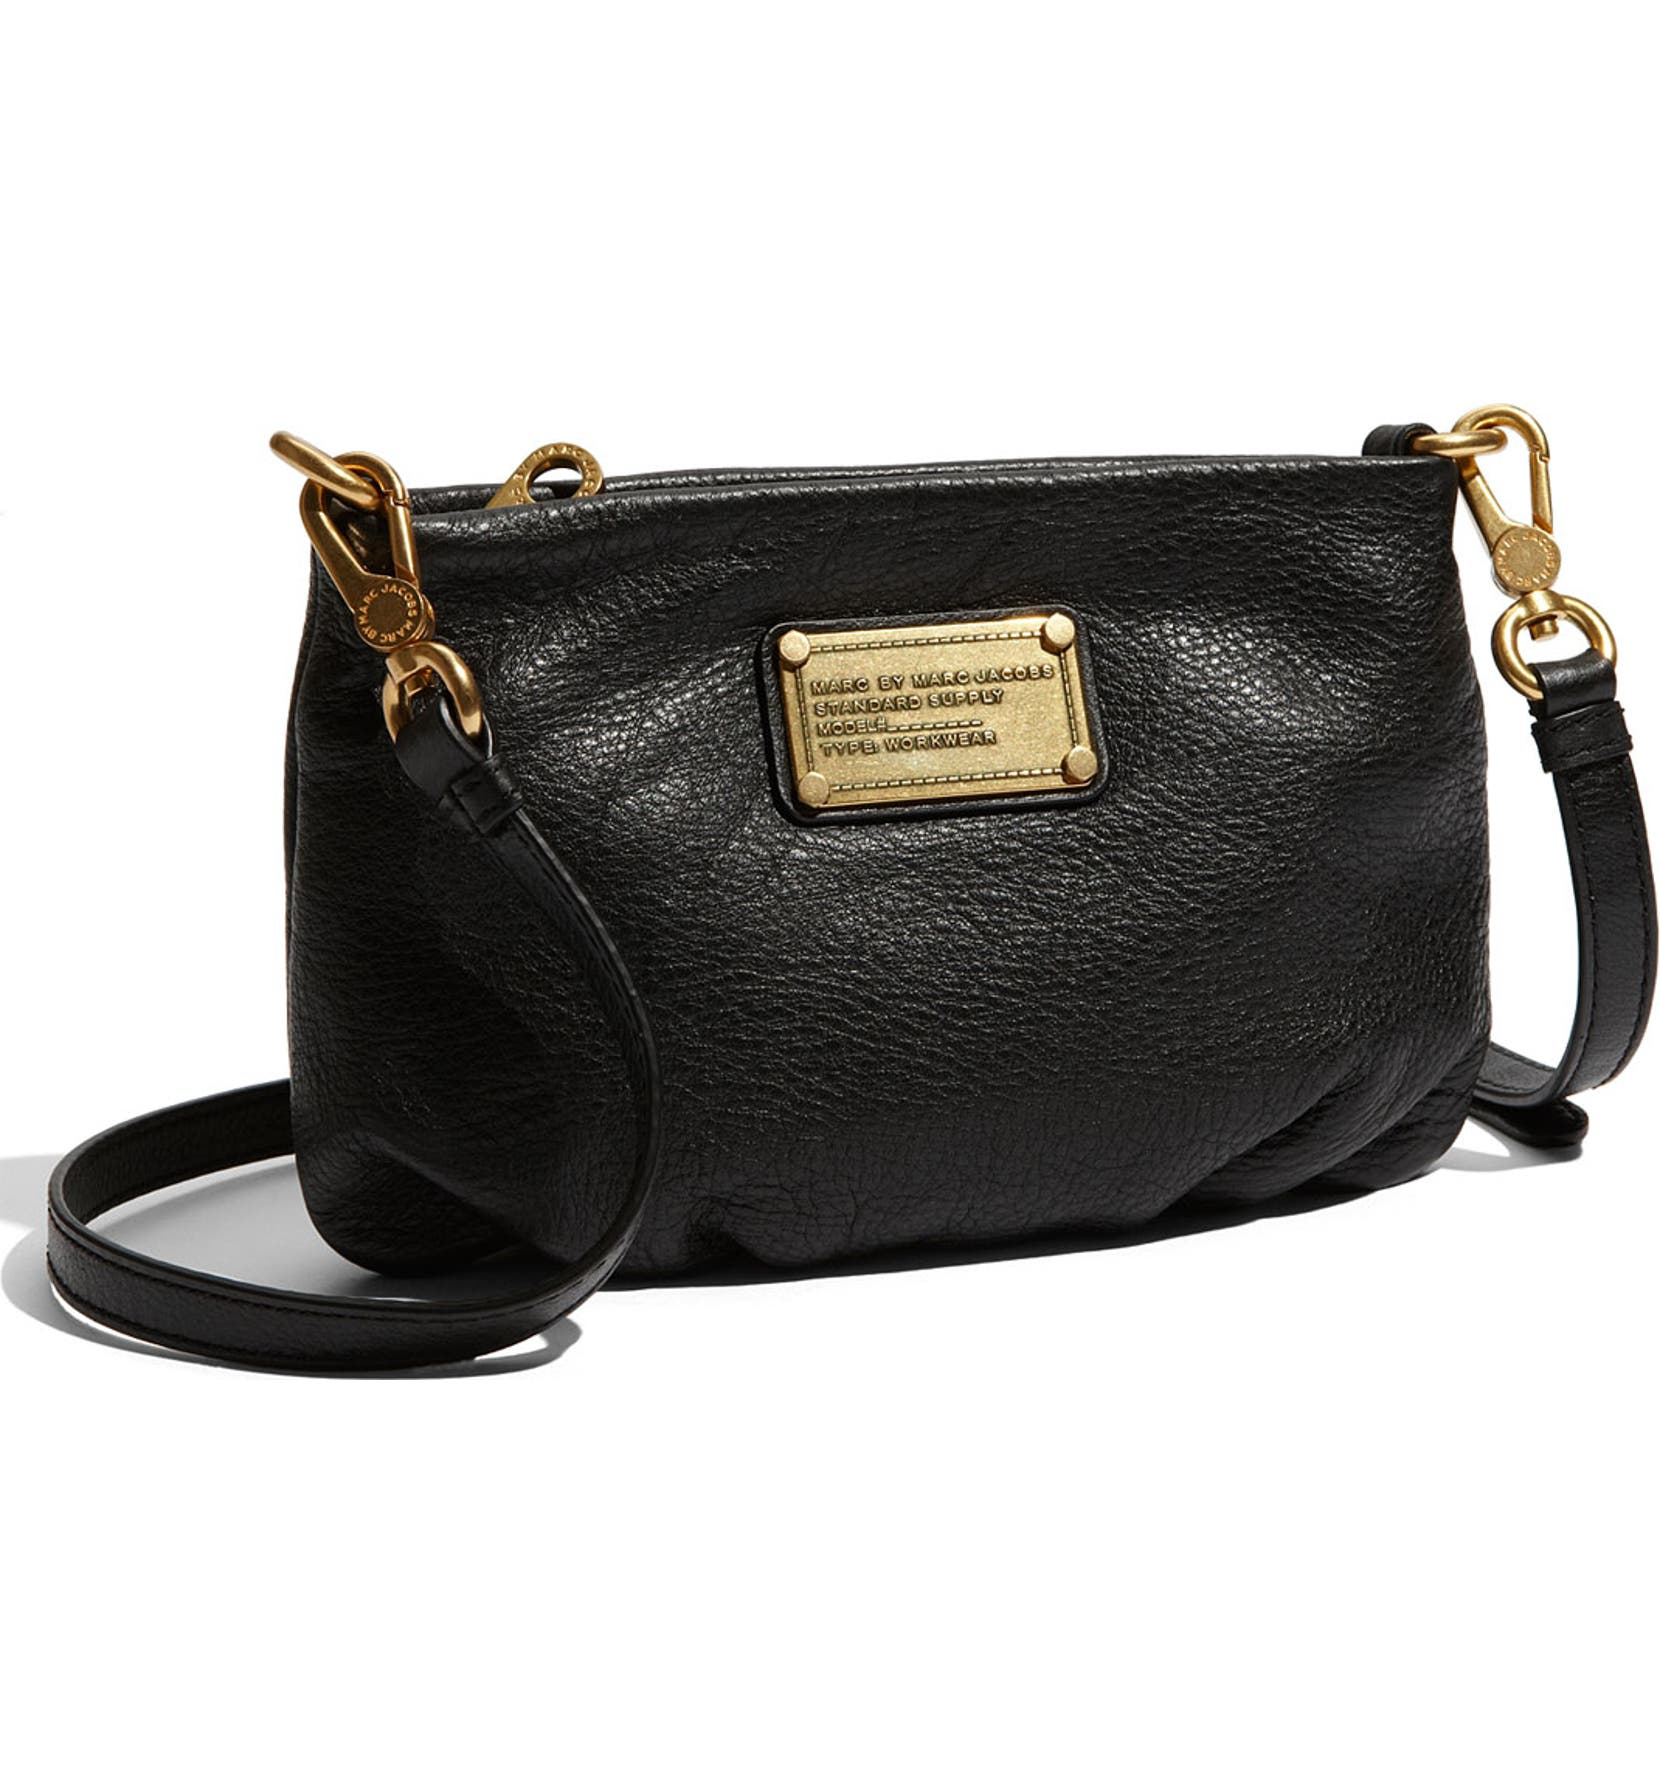 d455cc08831717 MARC BY MARC JACOBS  Classic Q - Percy  Crossbody Bag   Nordstrom